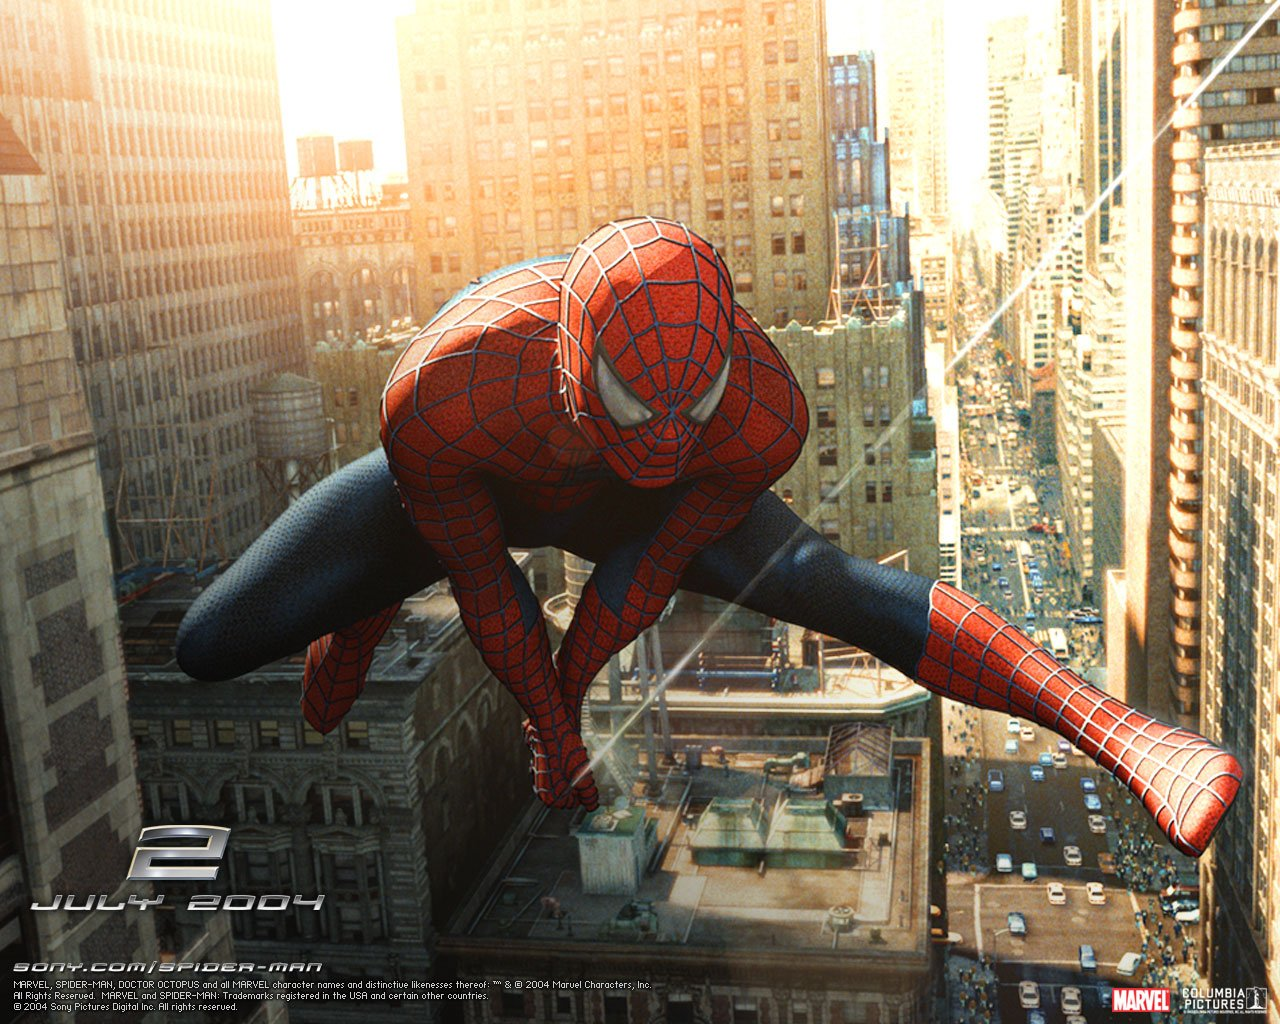 Photo Spider-man Spider-Man 2 Spiderman hero Movies film